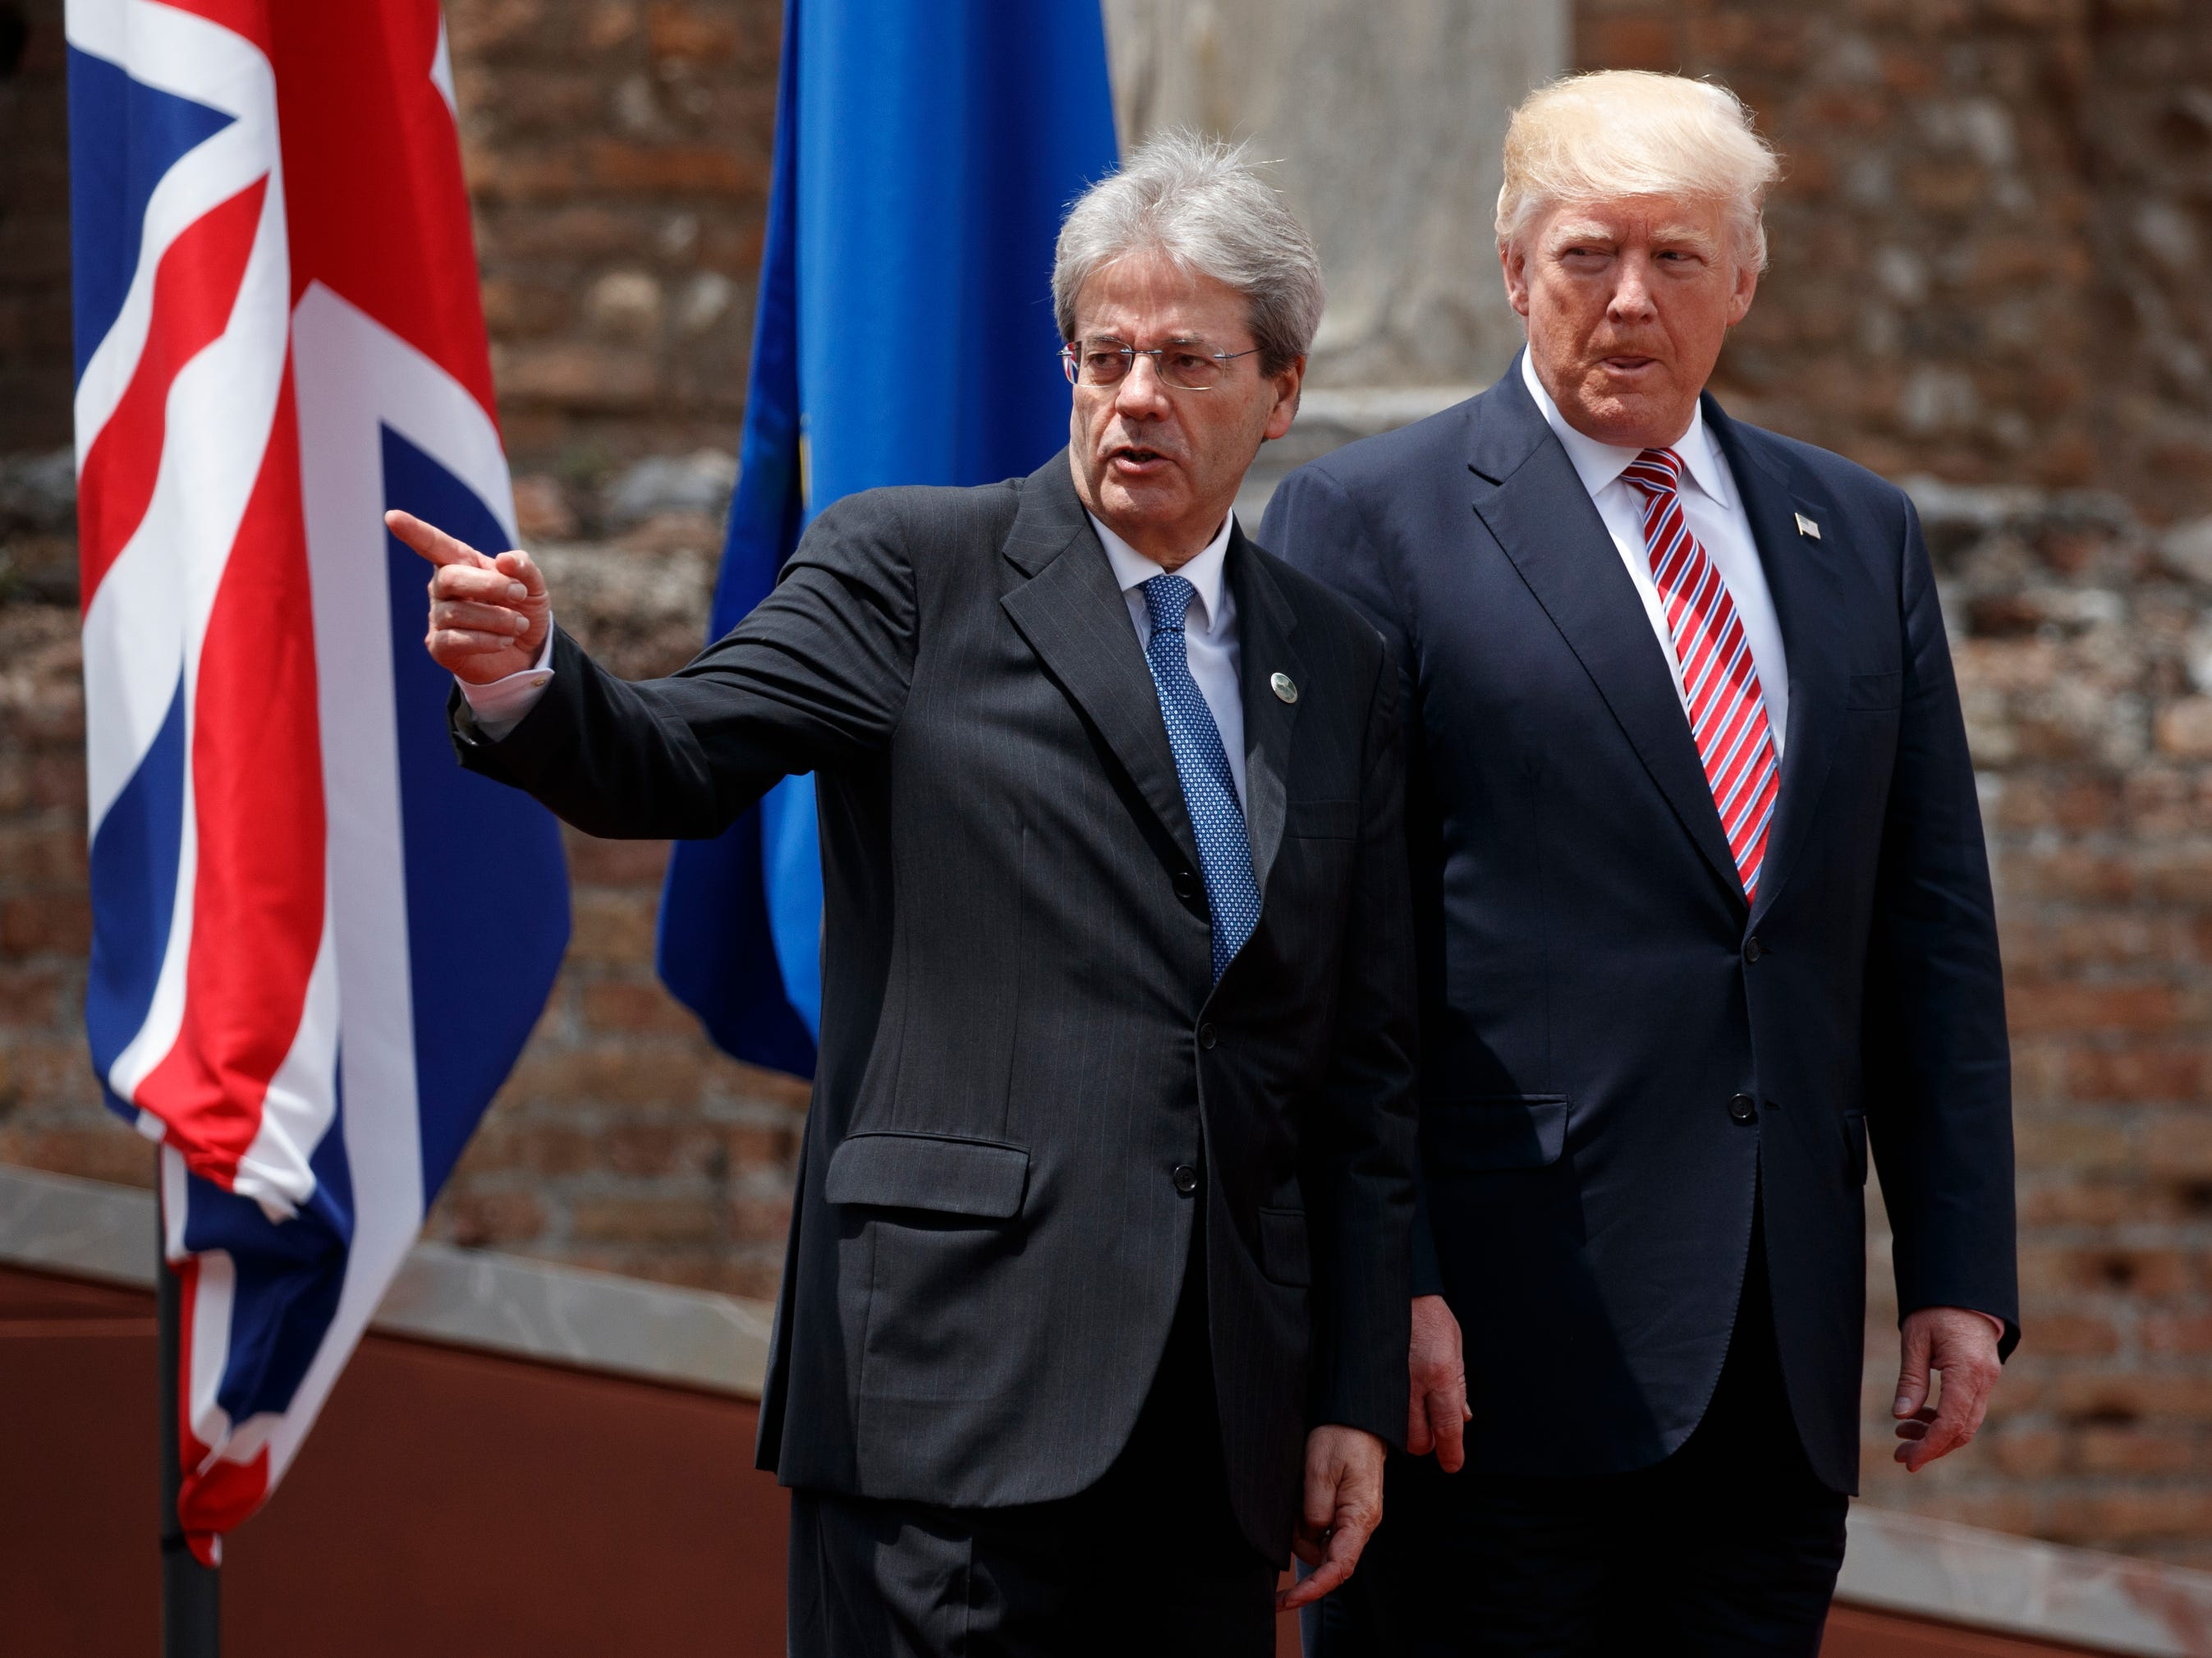 President Trump walks with Italian Prime Minister Paolo Gentiloni after arriving for a family photo with G7 leaders at the Ancient Greek Theater of Taormina on May 26, 2017, in Taormina, Italy.